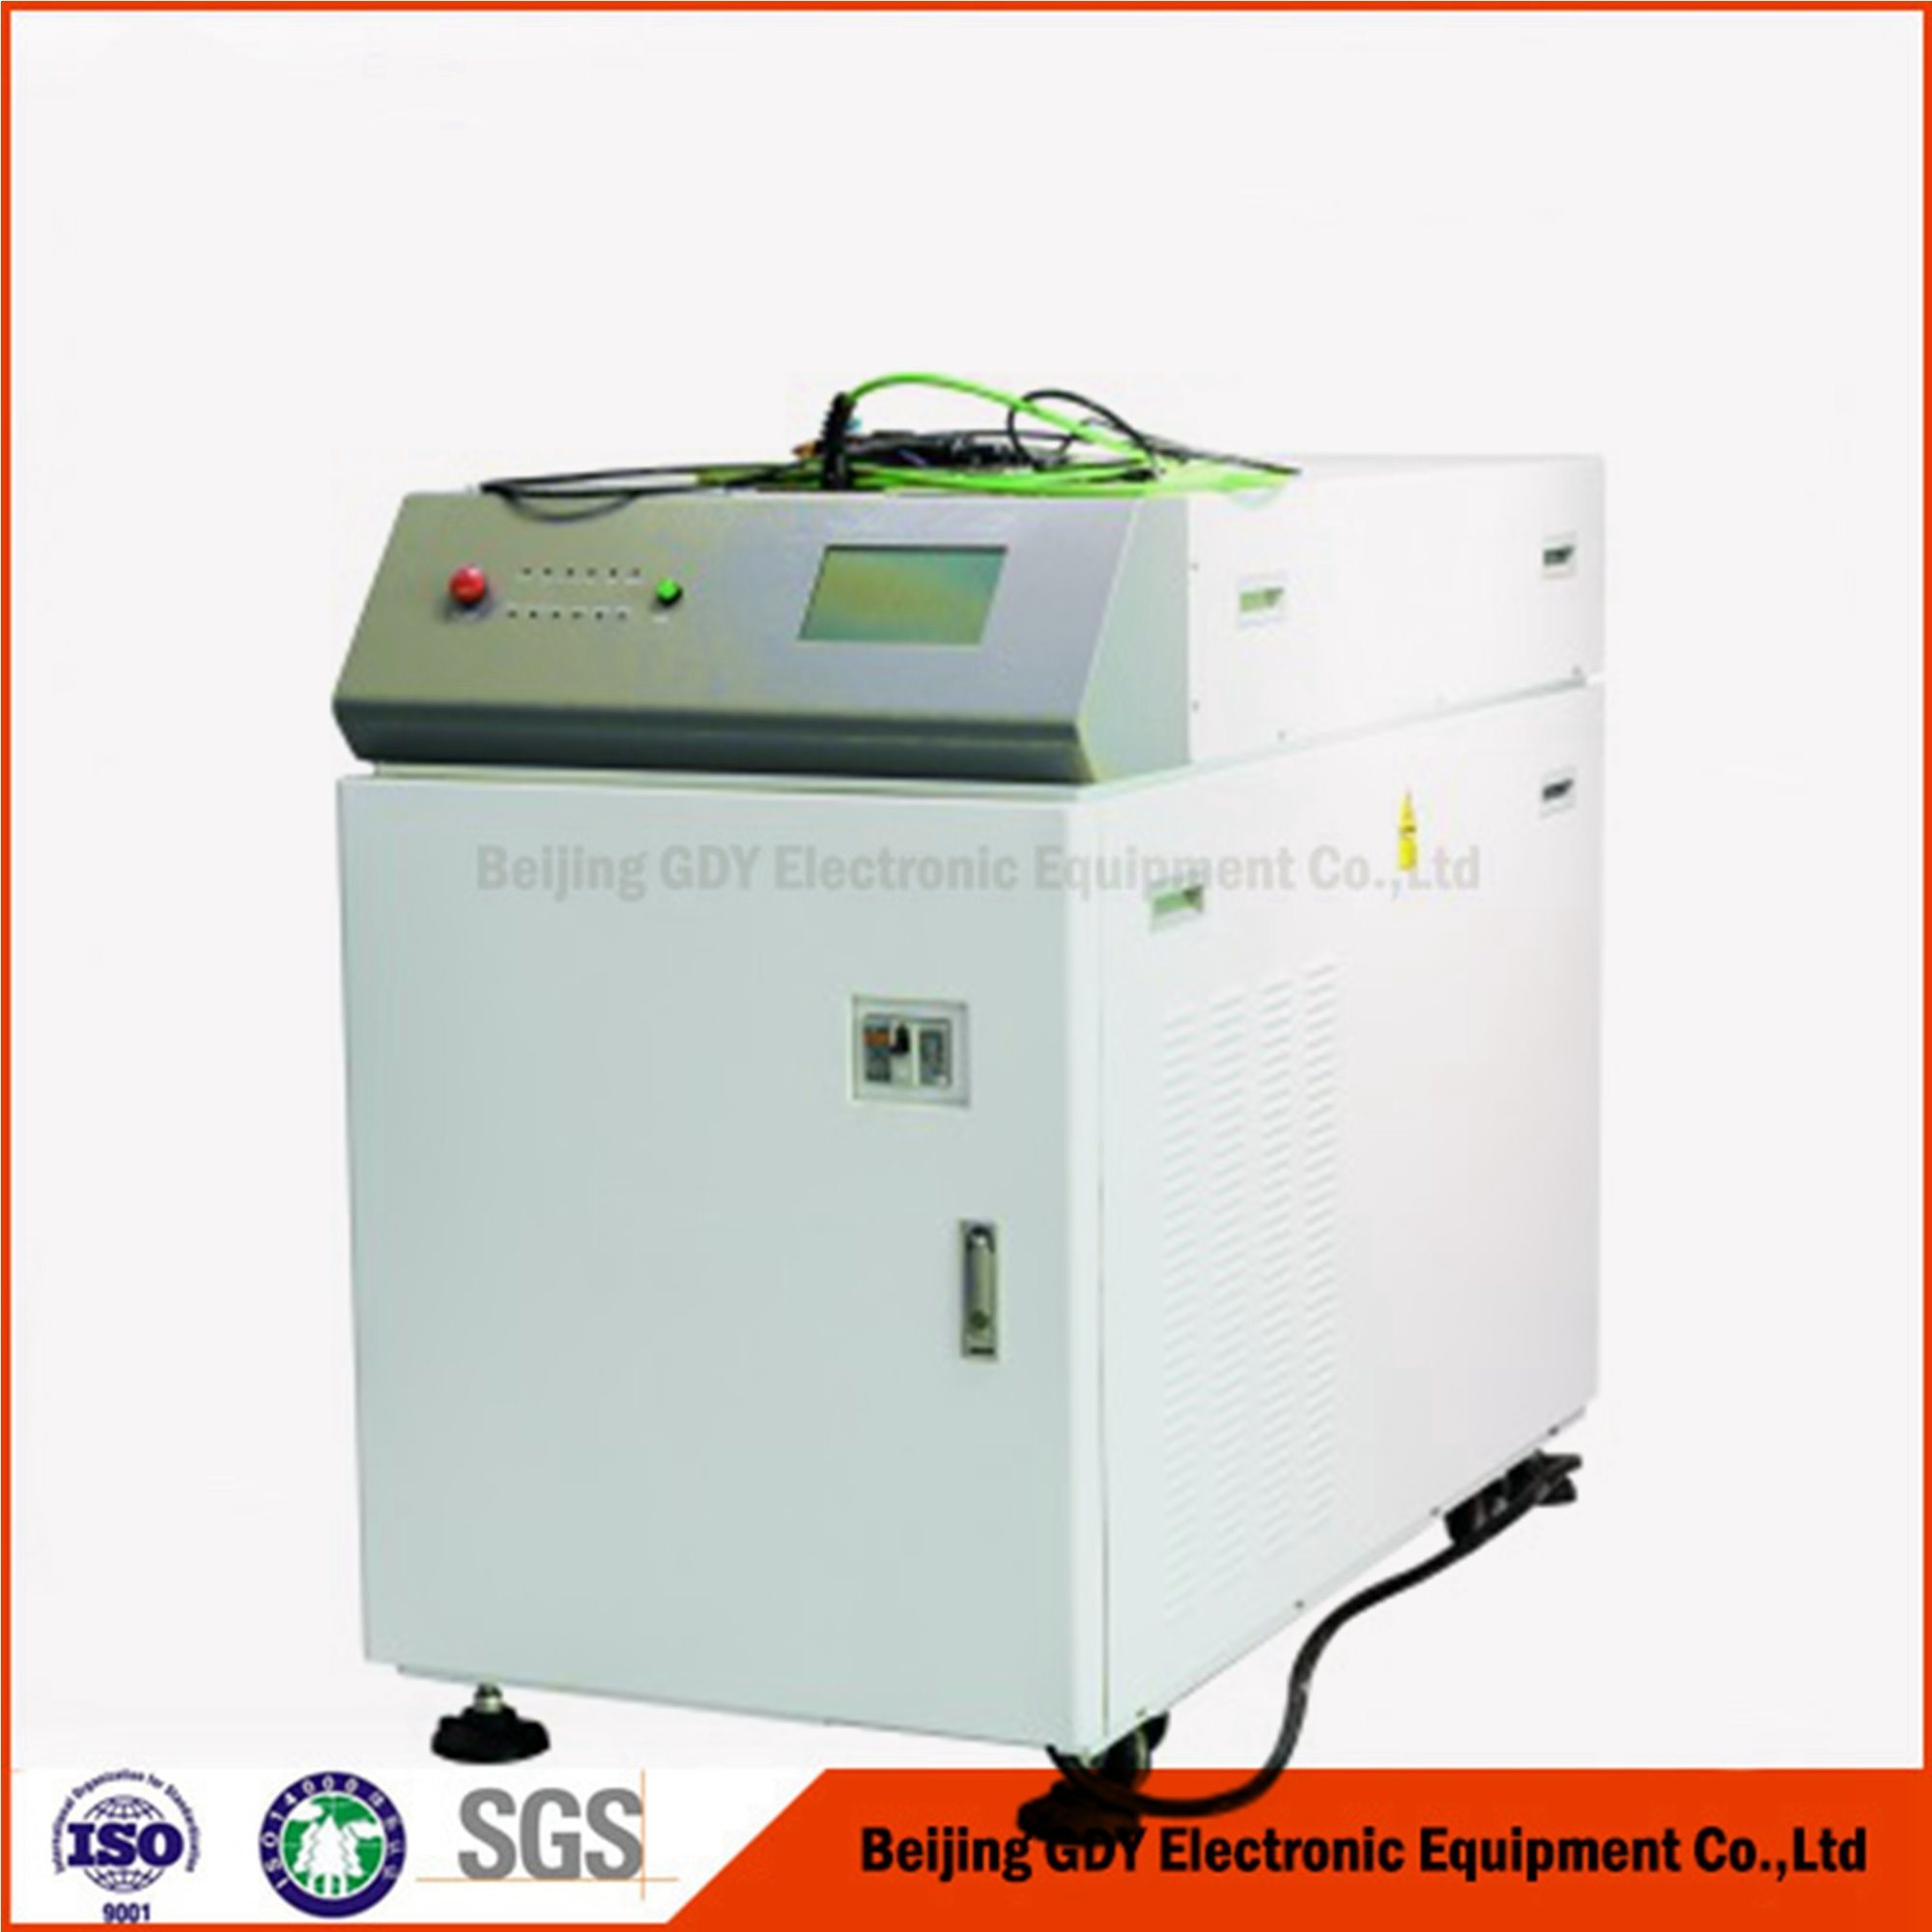 150W 300W 600W Fiber Optical Laser Welding Machine